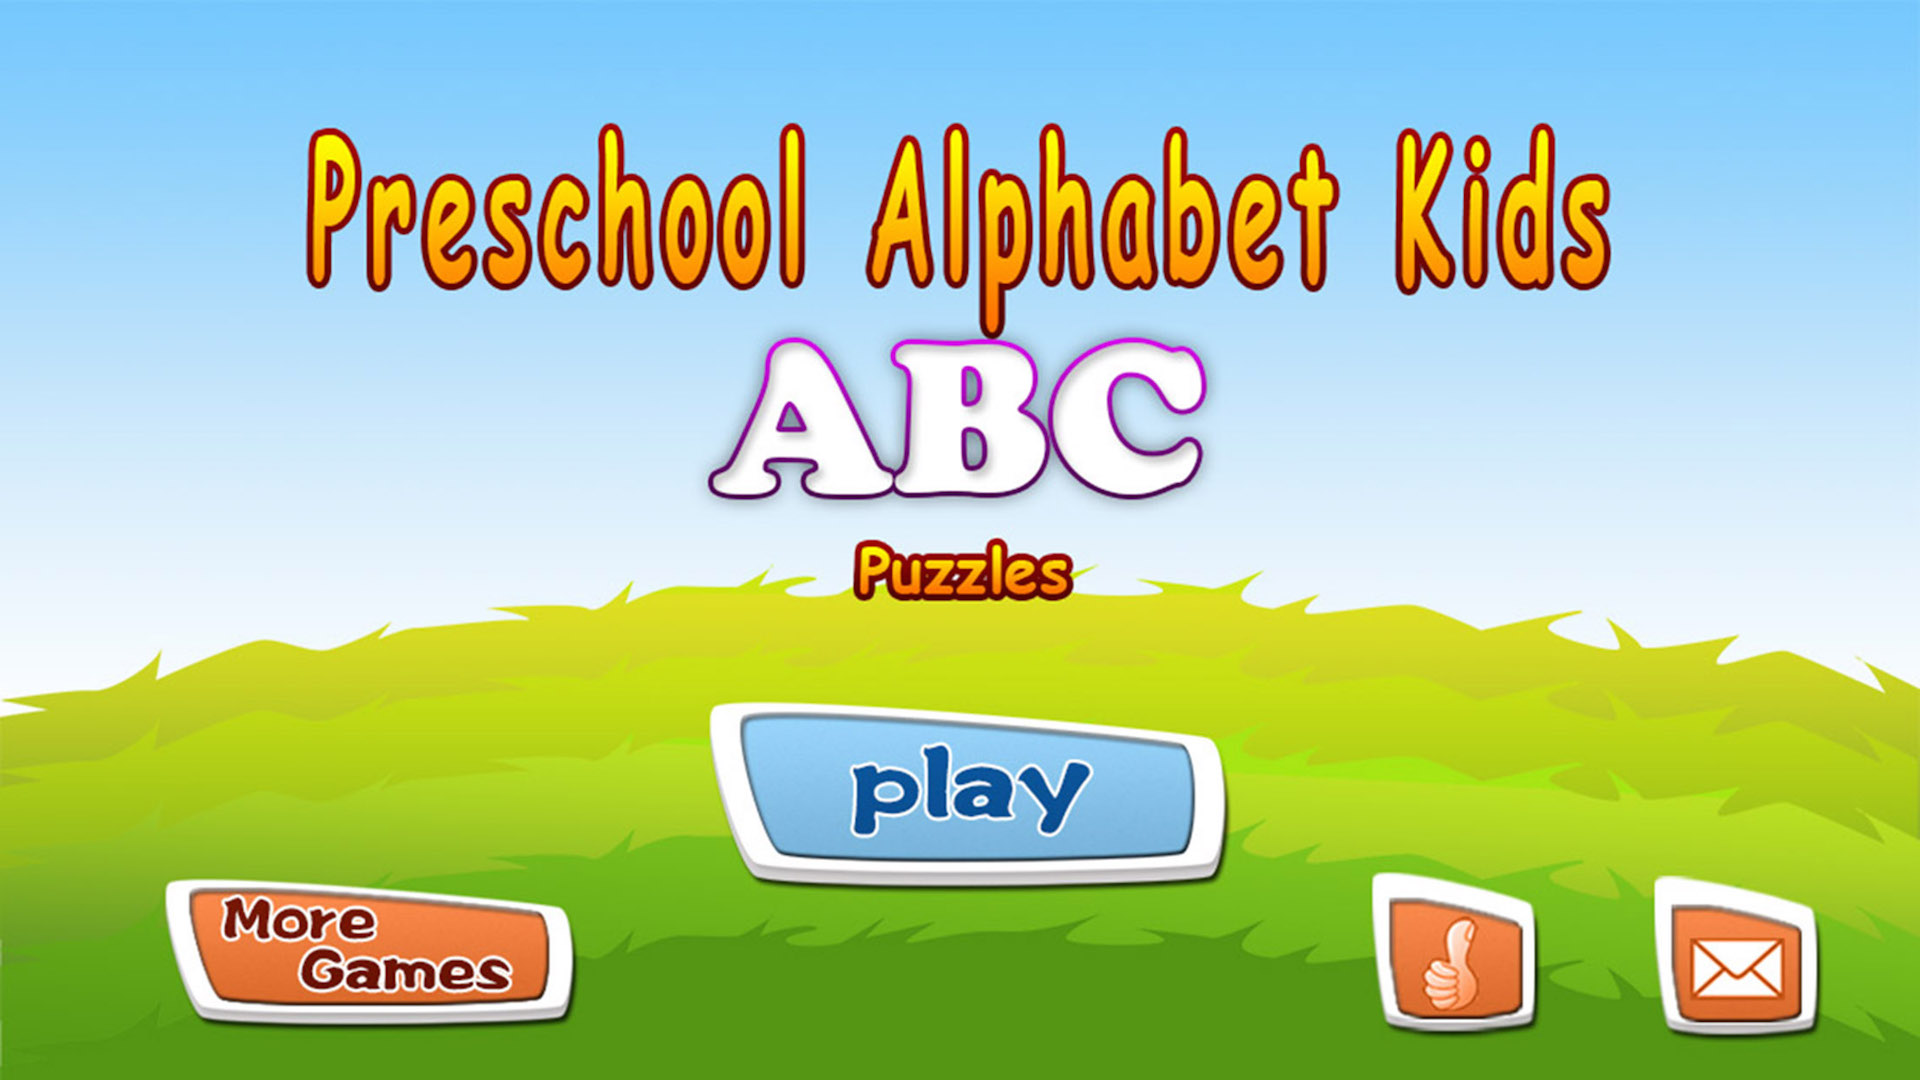 AmazonCom Preschool Alphabet Kids Abc Puzzles And Flashcards